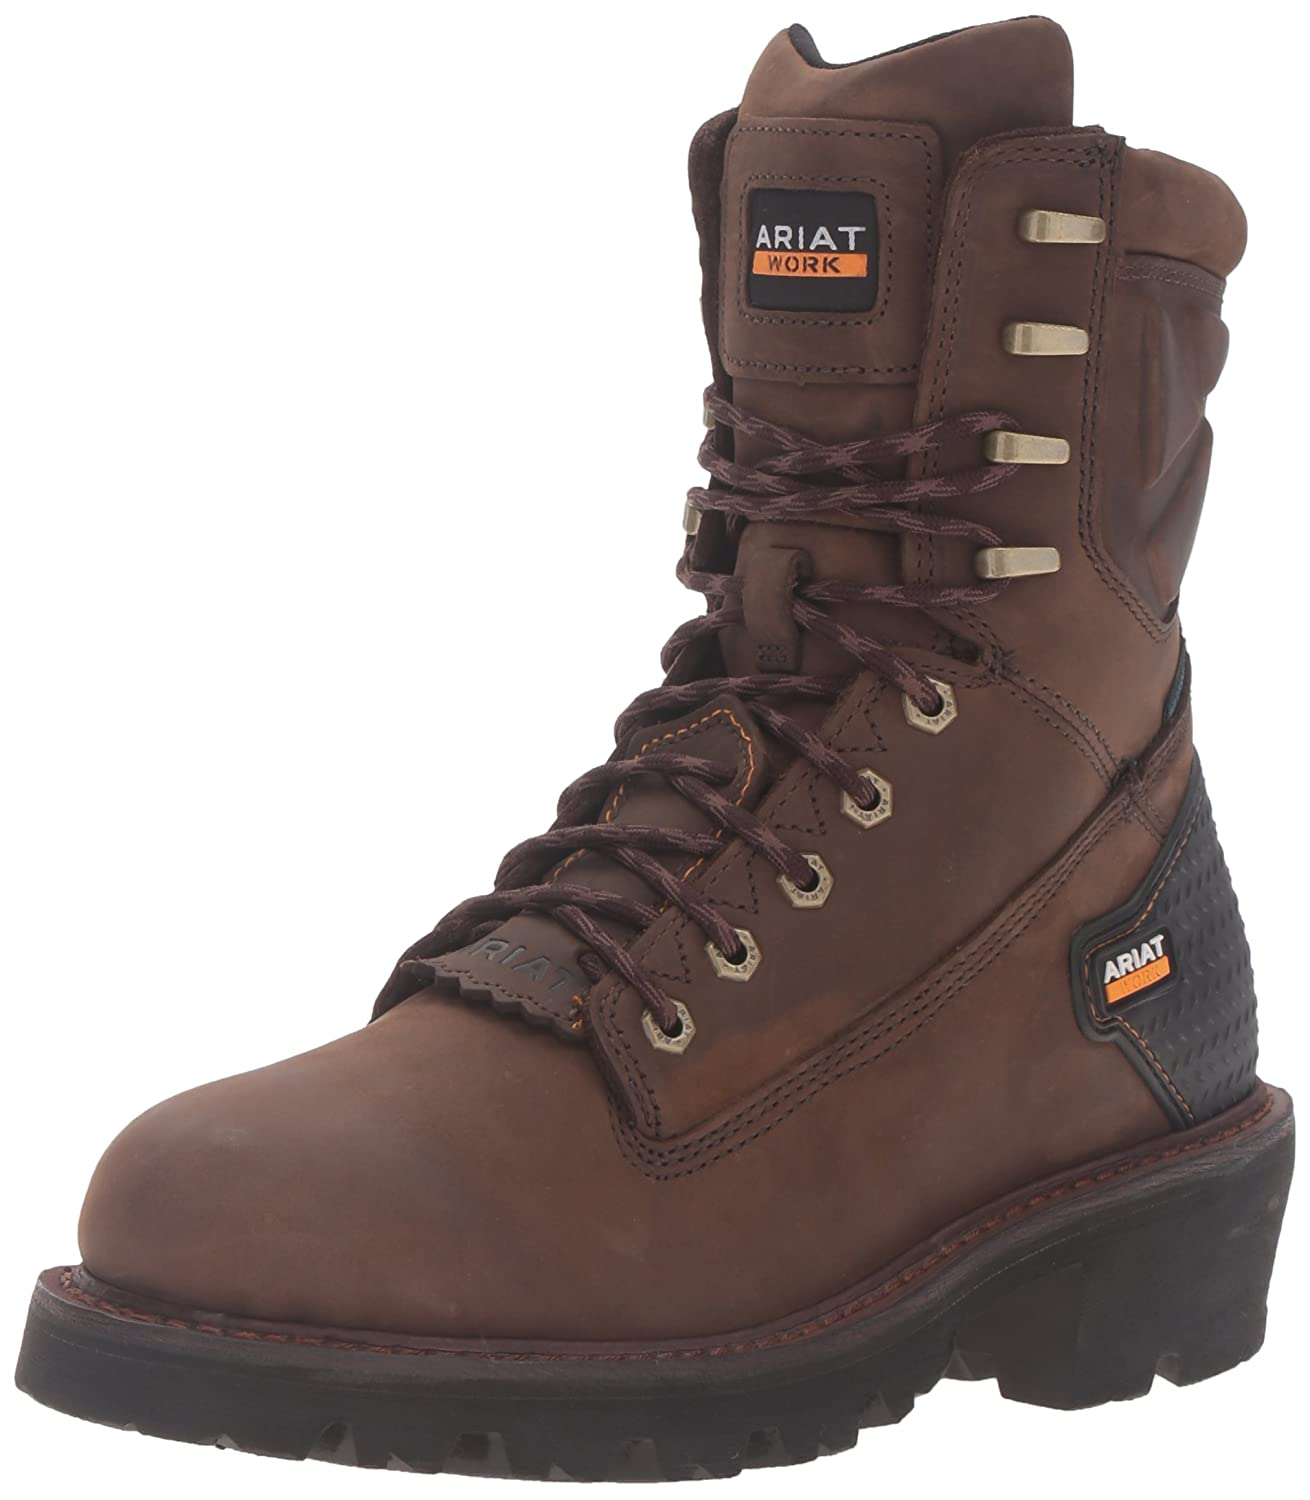 Ariat メンズ Oily Distressed Brown 12 D(M) US 12 D(M) USOily Distressed Brown B01BL65LQ4